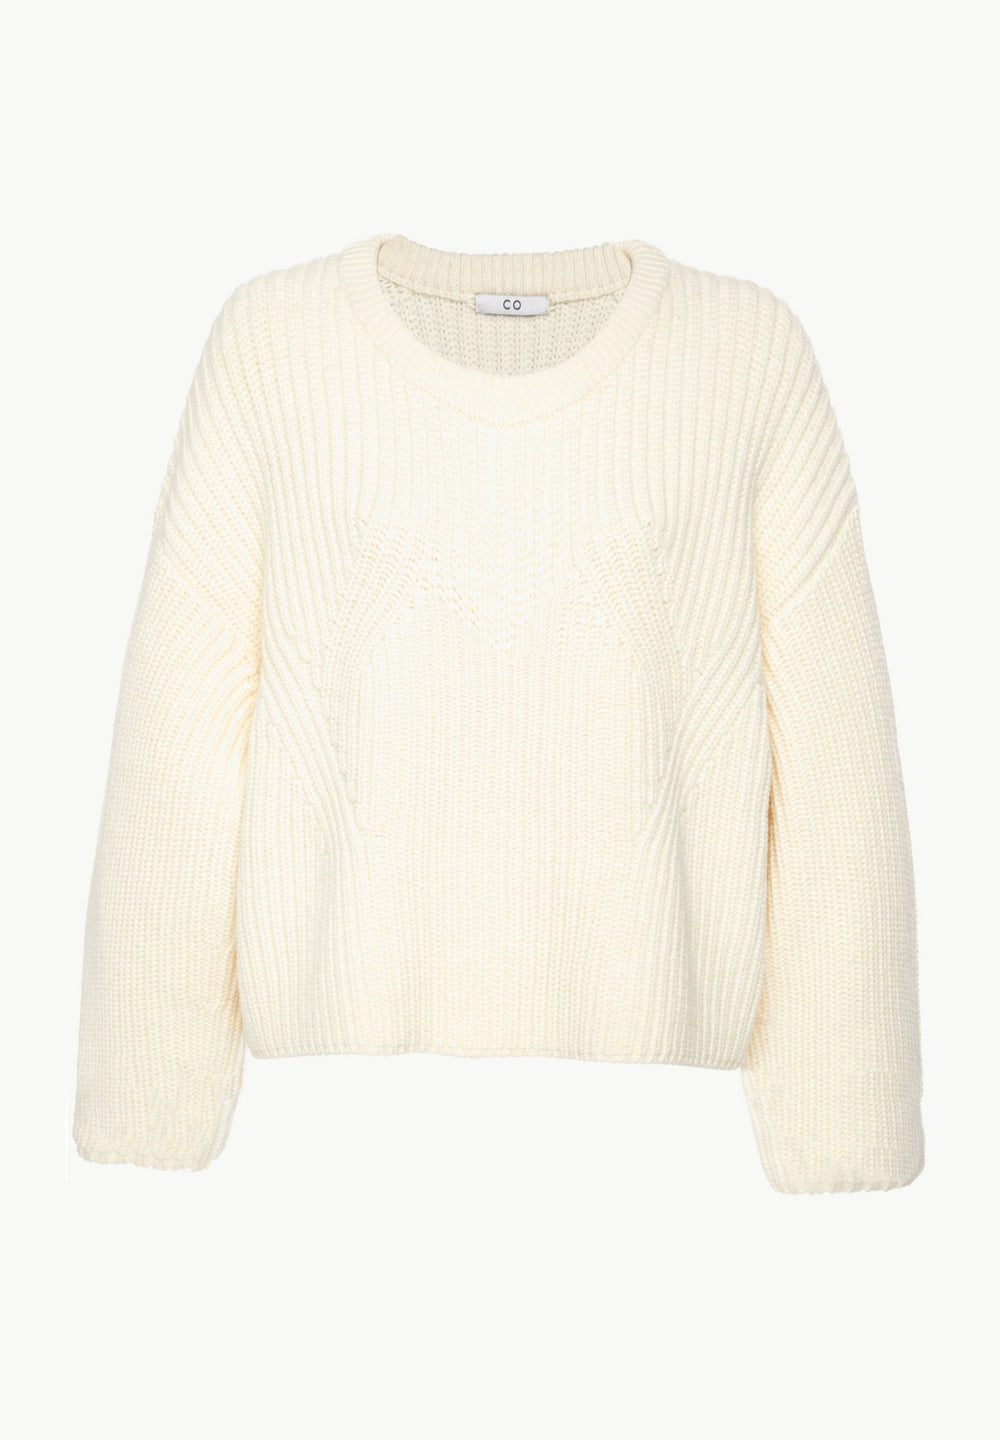 Boxy Crewneck Sweater in Wool Cashmere - Black in Ivory by Co Collections